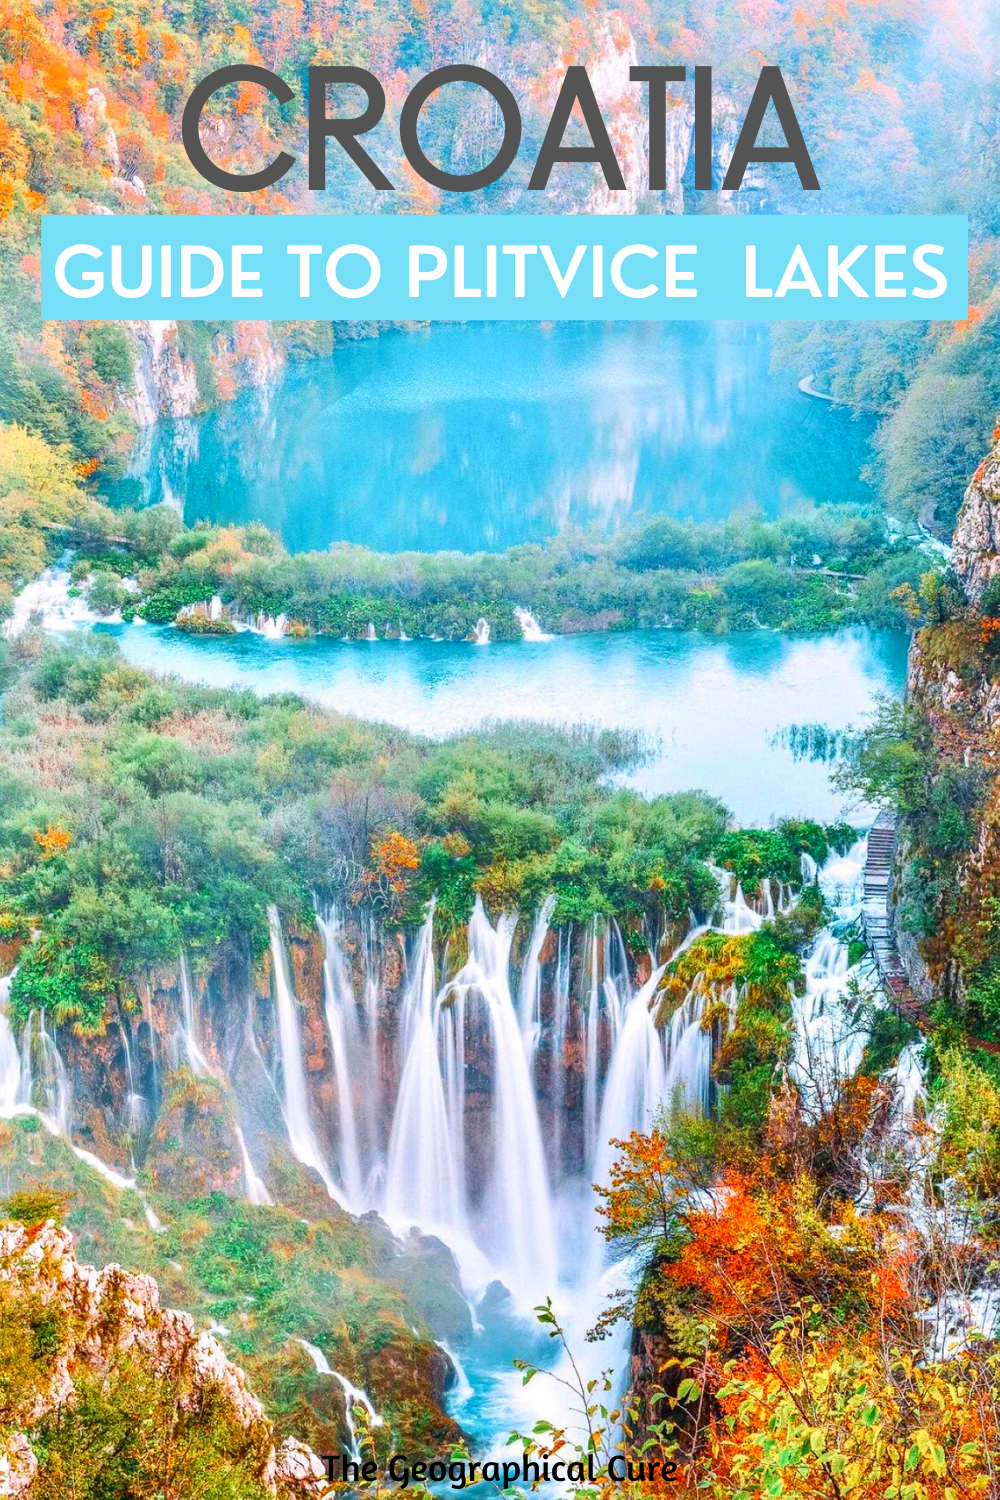 Complete Guide to Plitvice Lakes National Park in Croatia